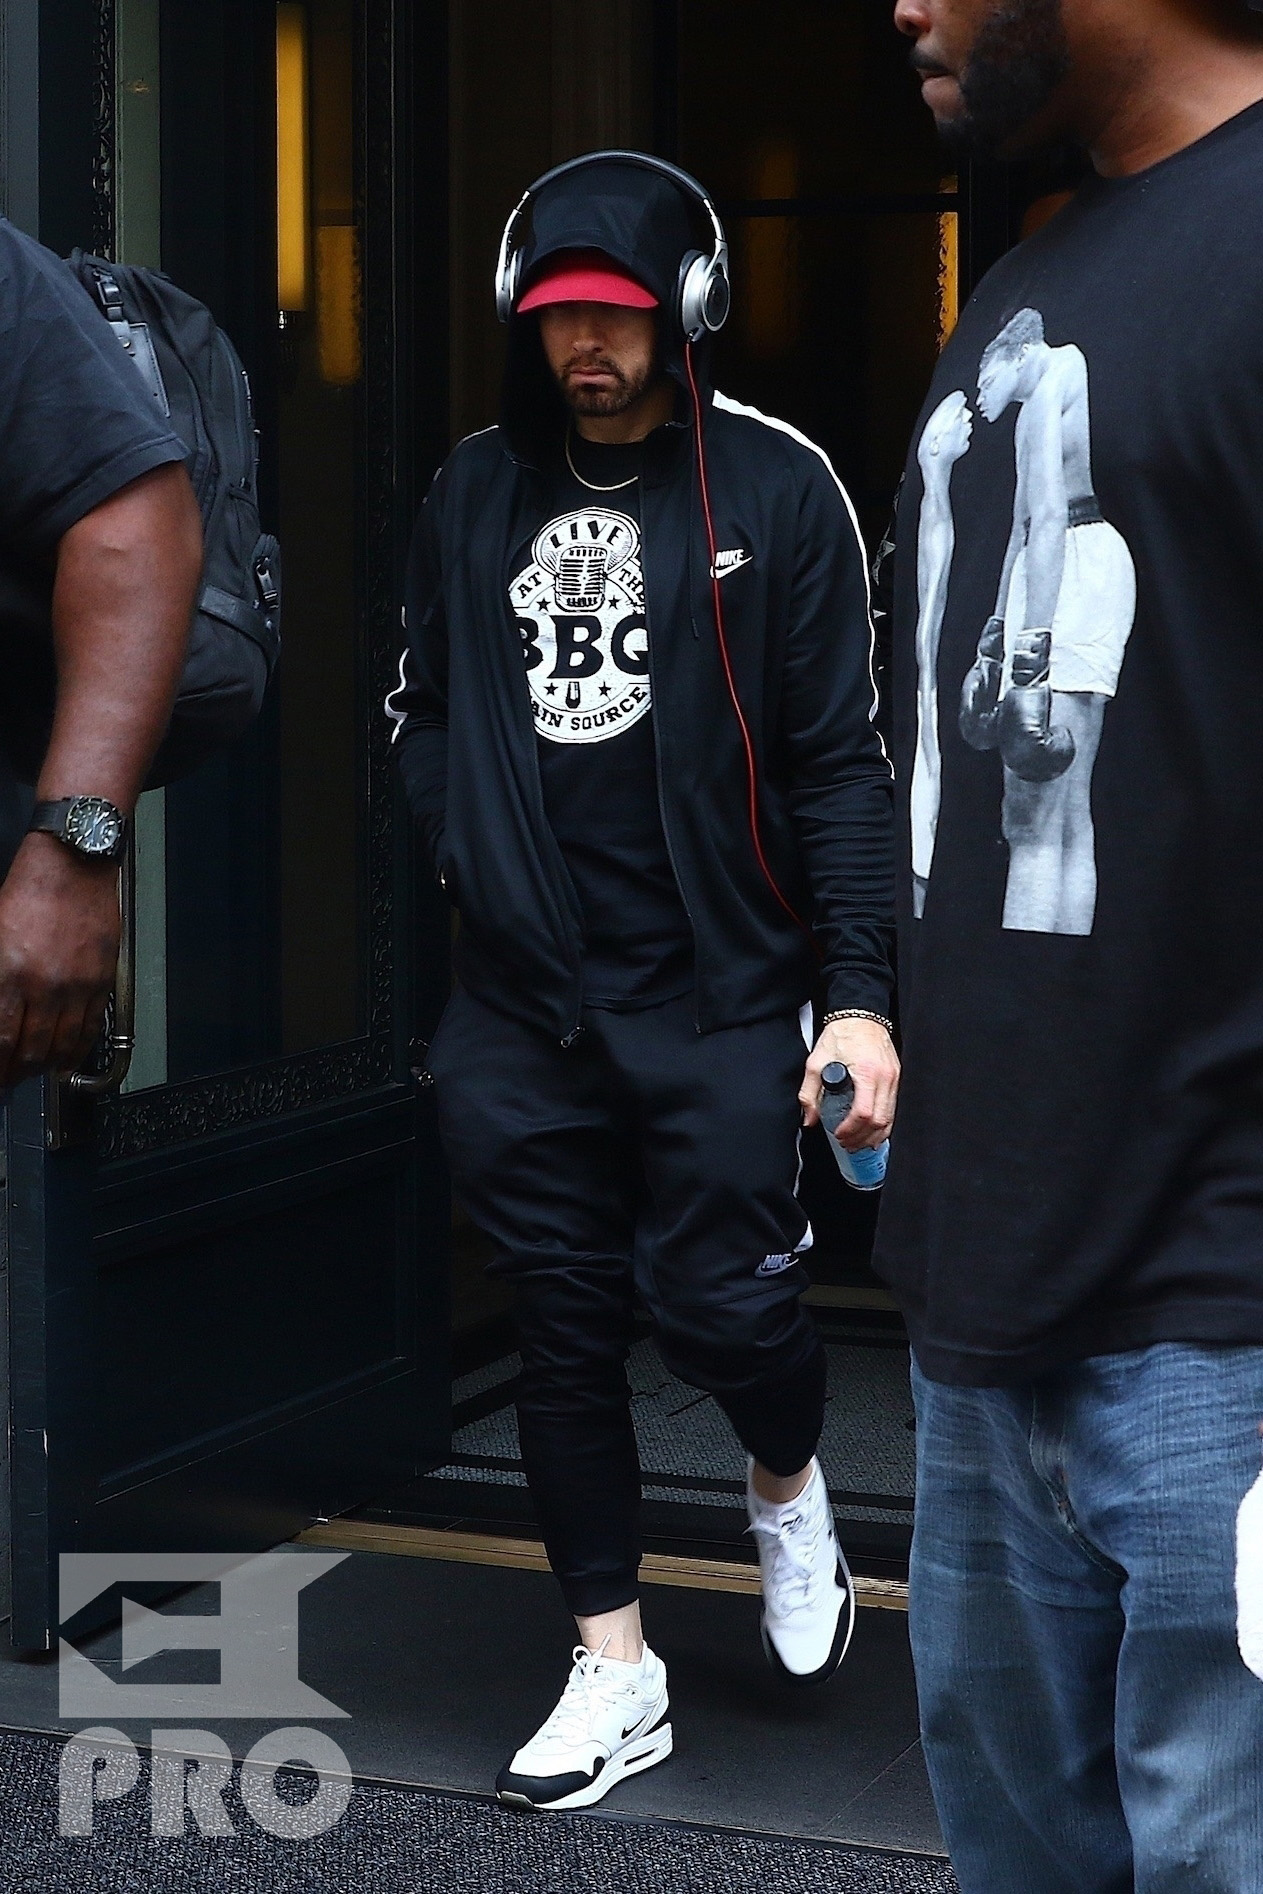 New York, NY - *EXCLUSIVE* - Eminem quickly heads to his car after leaving his hotel. Eminem doesn't have the time to stop and talk to fans as he waves instead and hops into his ride.